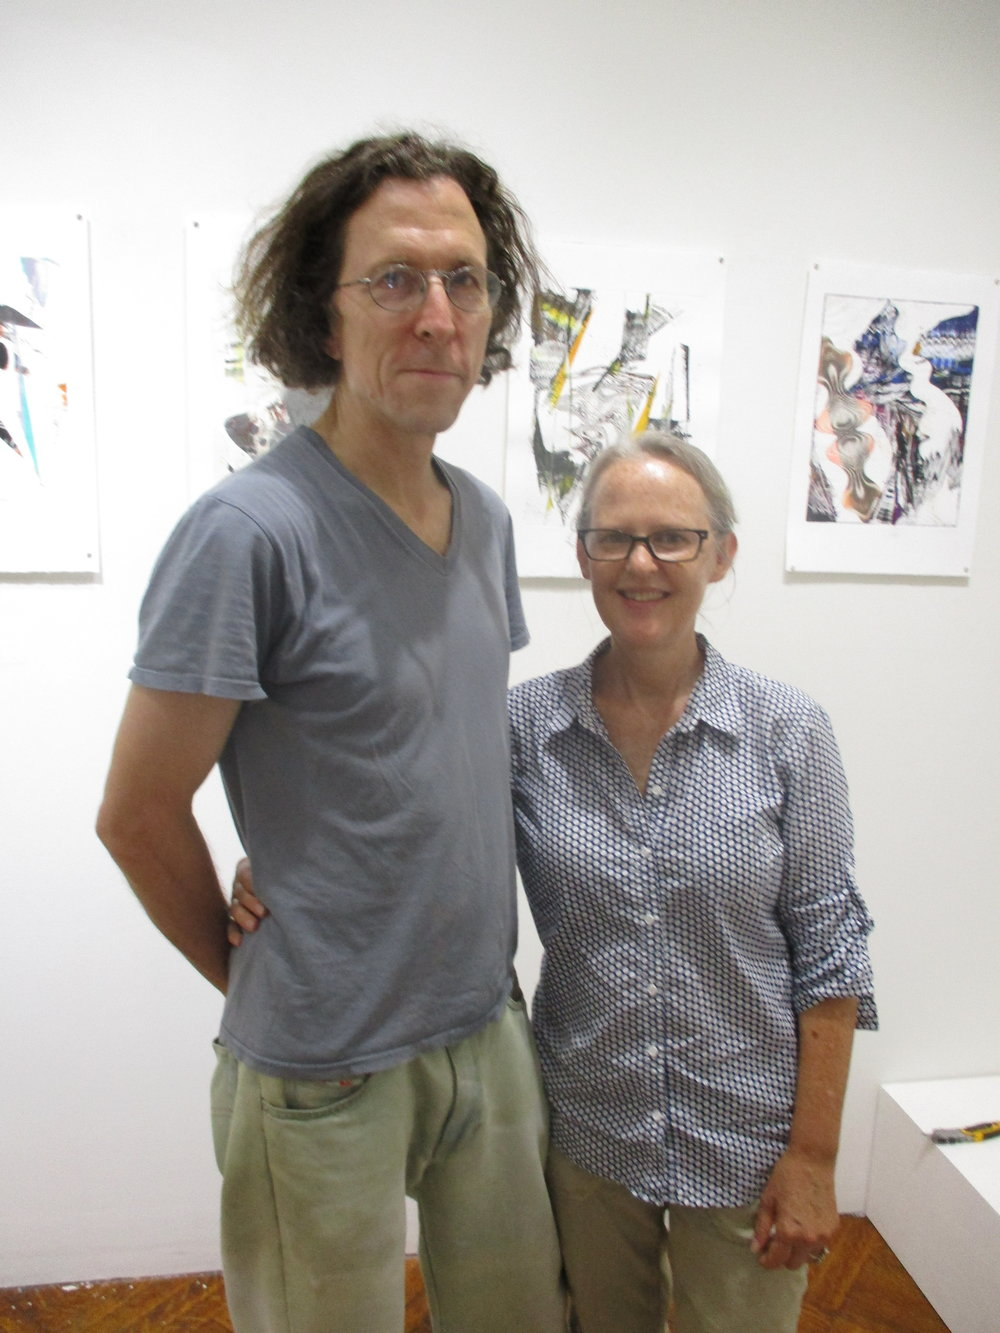 Don Doe and Cecilia Whittaker-Doe owners of SRO gallery on 1144 Dean Street and both artists in their own right.